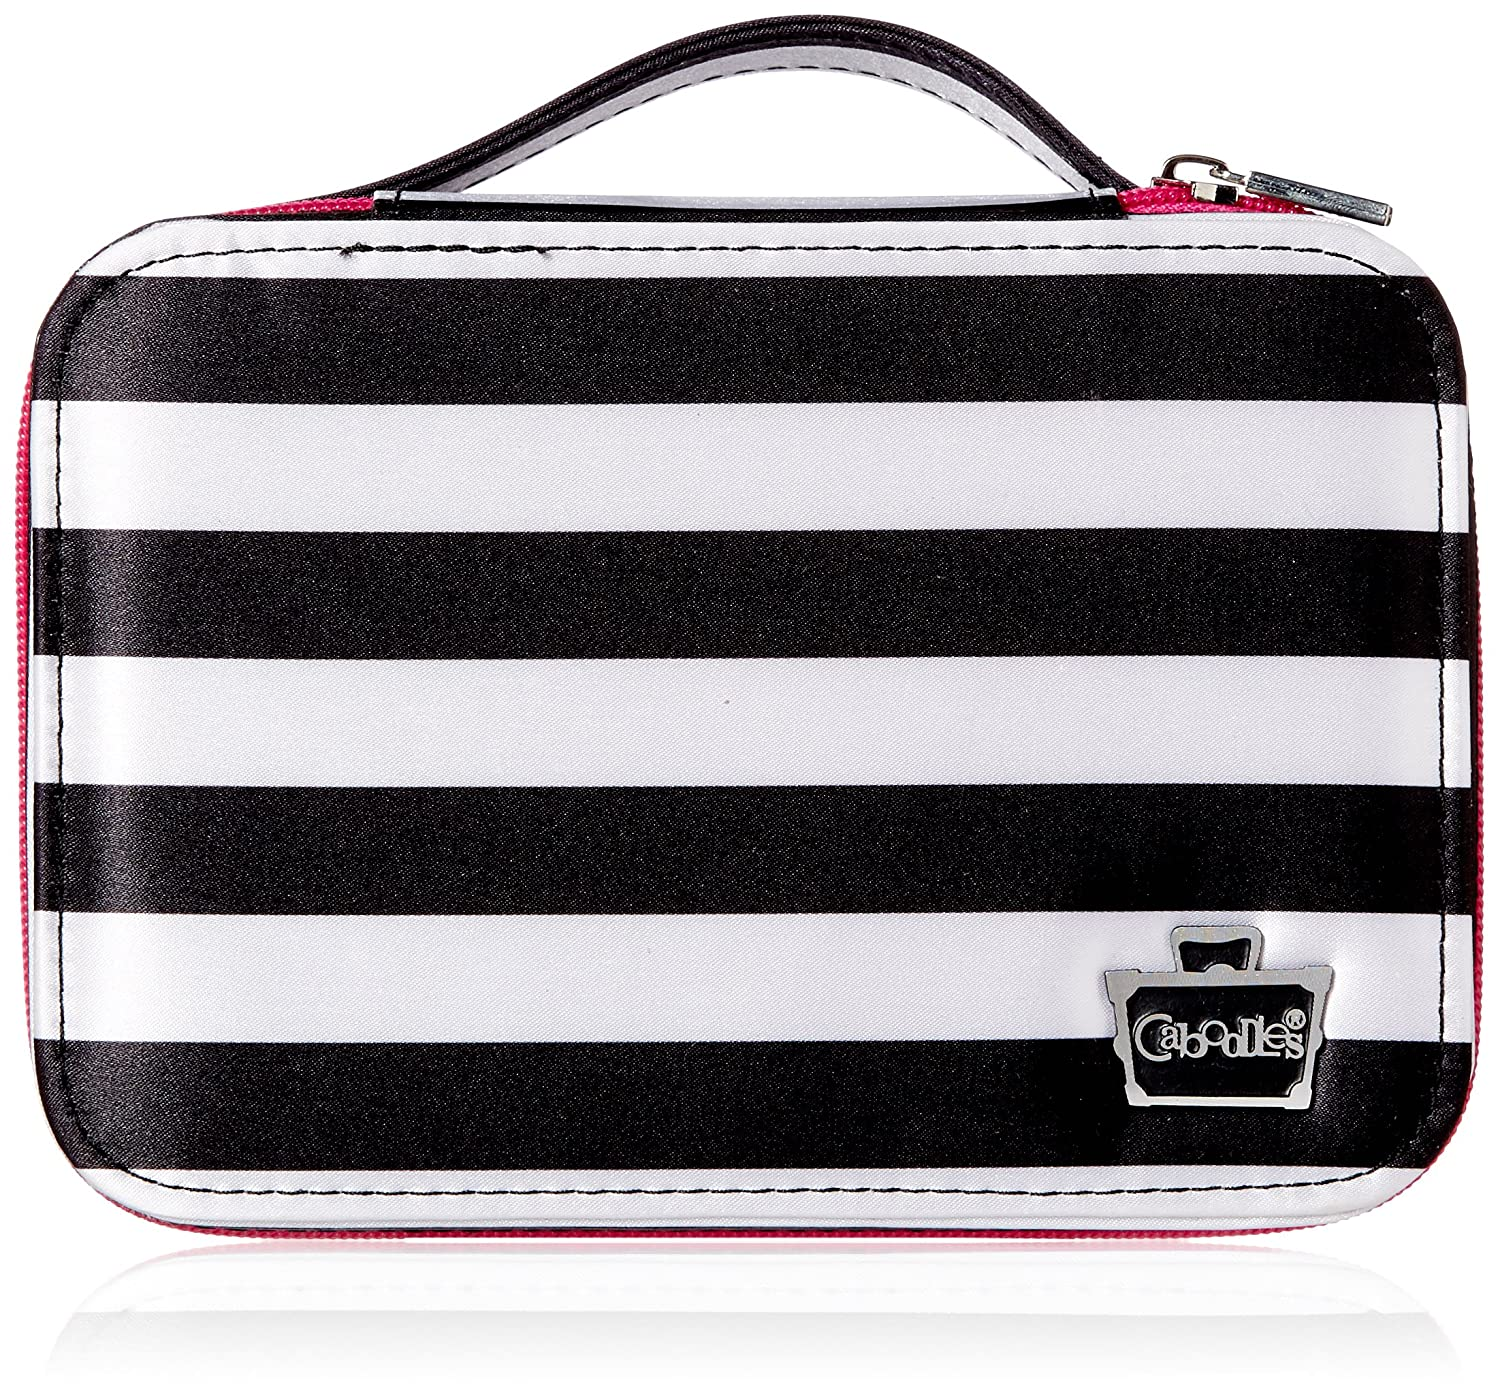 Caboodles Obsession Cosmetic Valet, Black/White Stripe, 0.61 Pound 582489